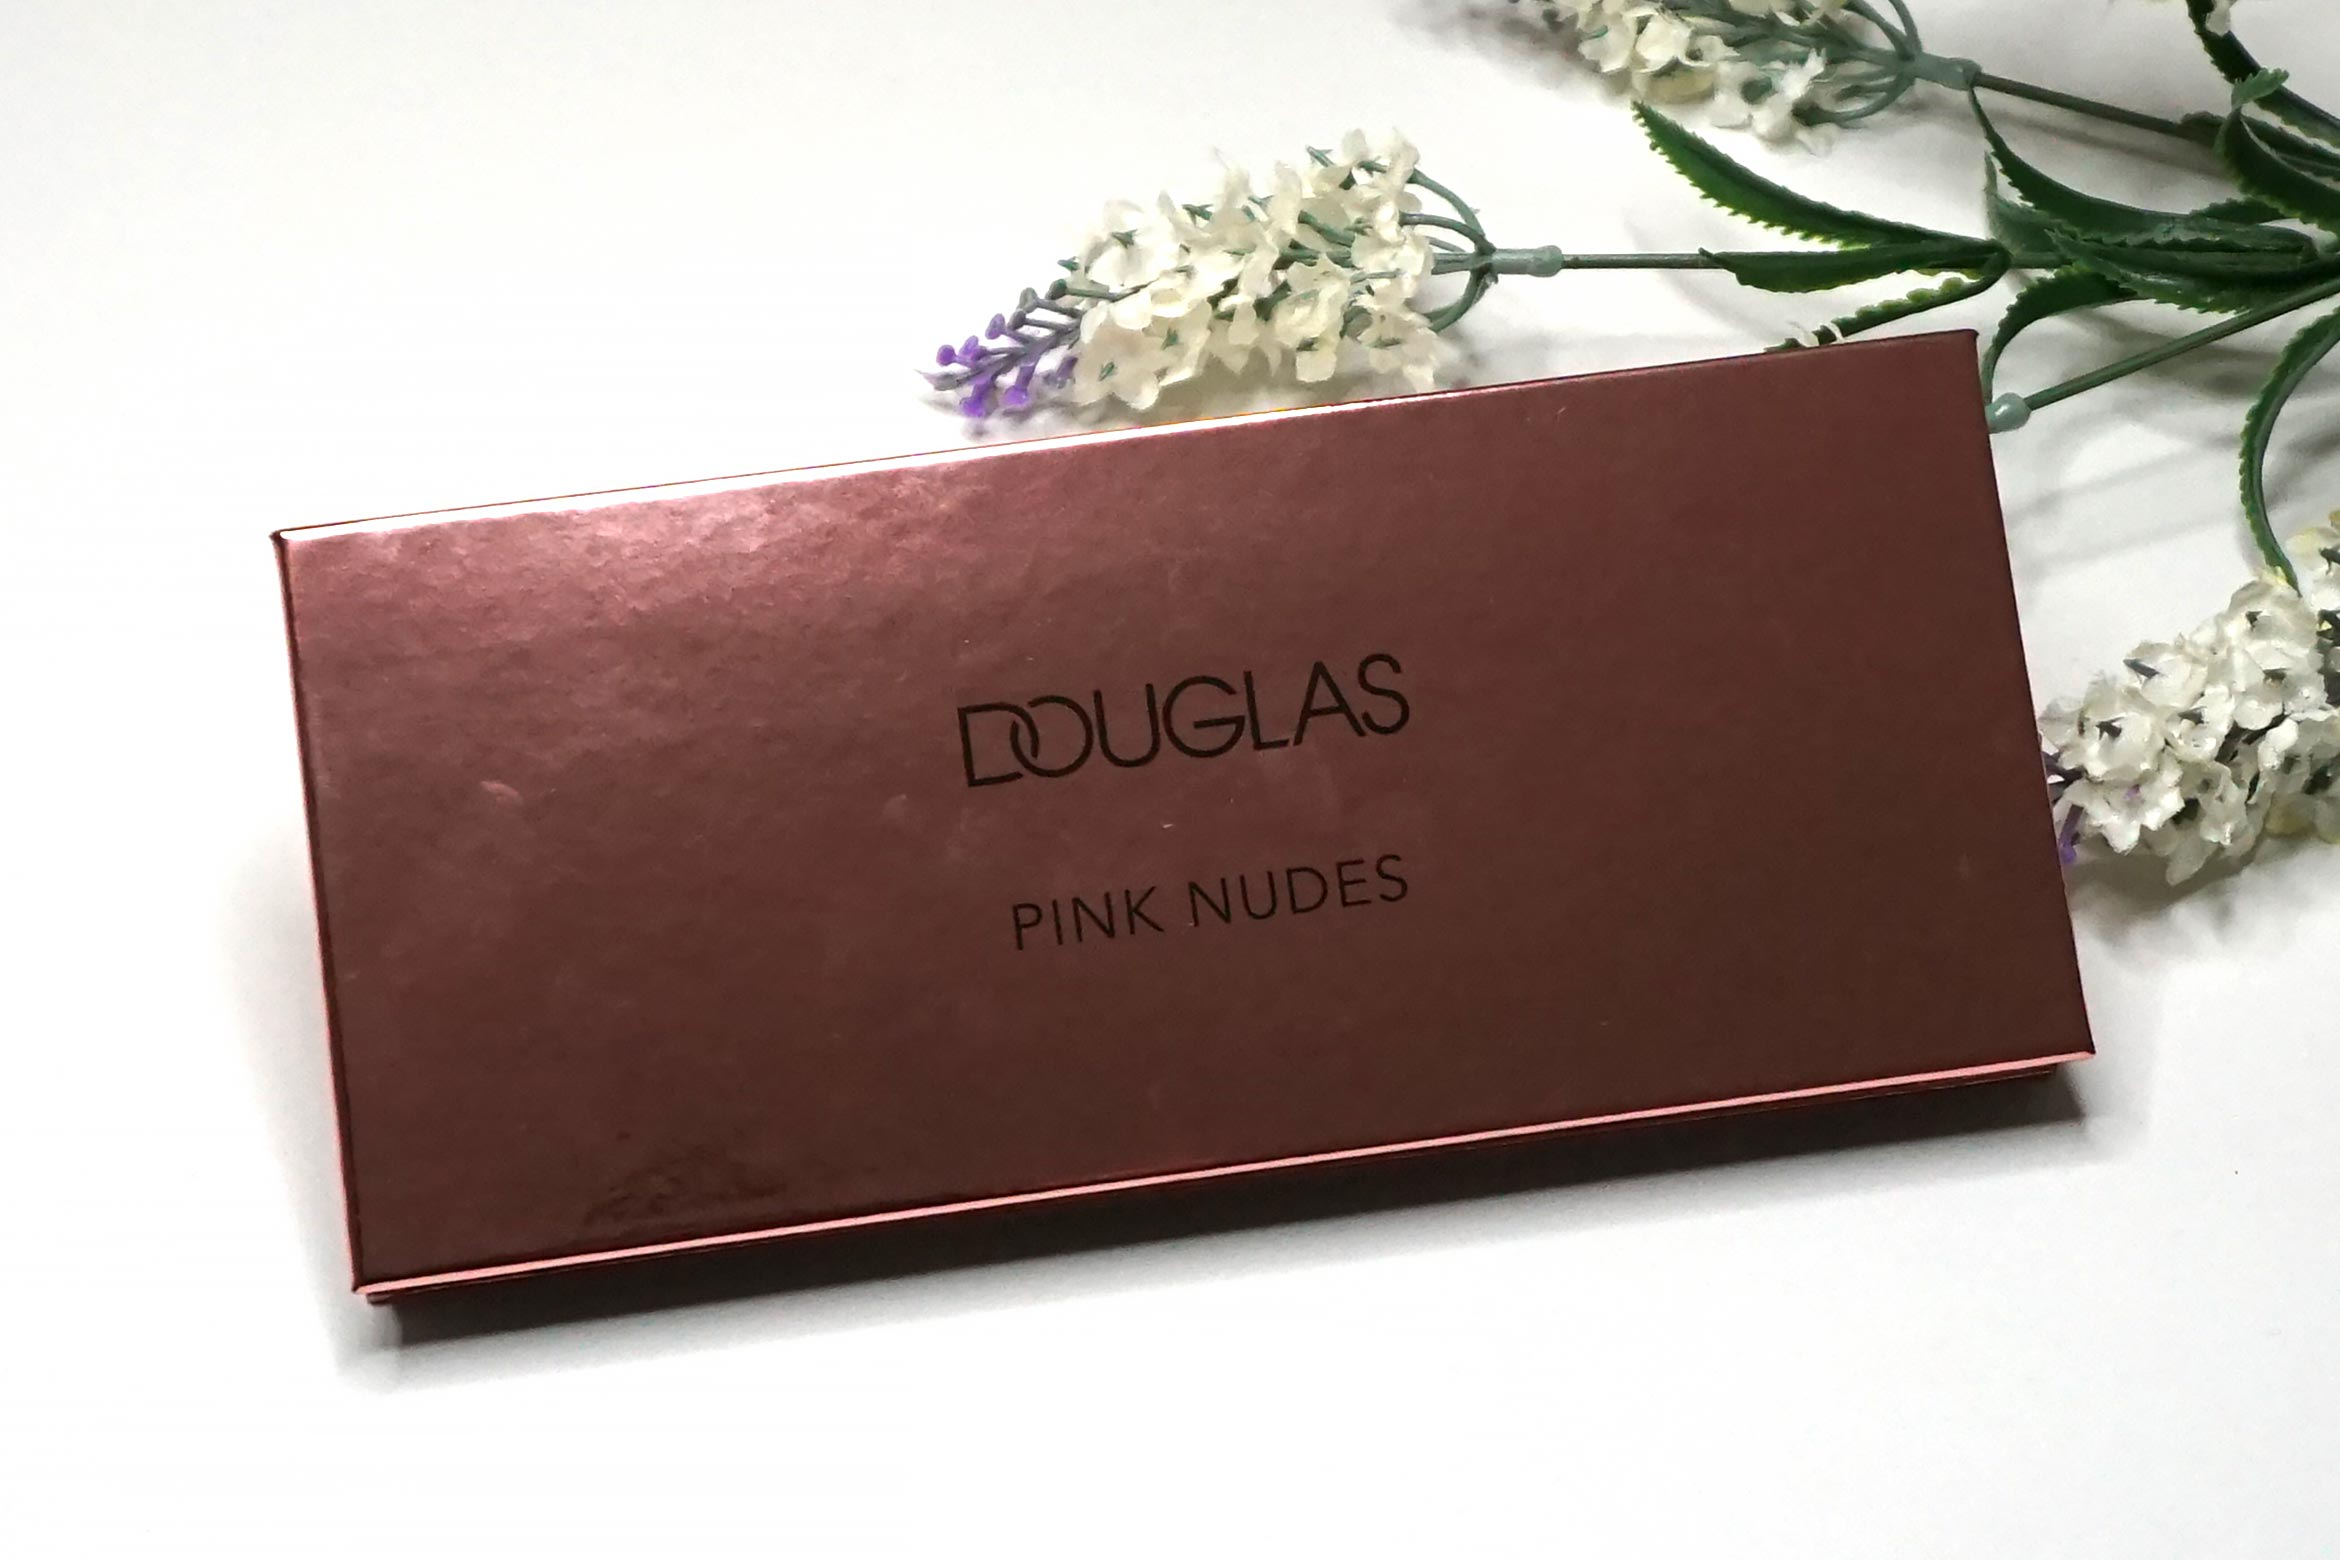 douglas-pink-nudes-eyeshadow-palette-review-3